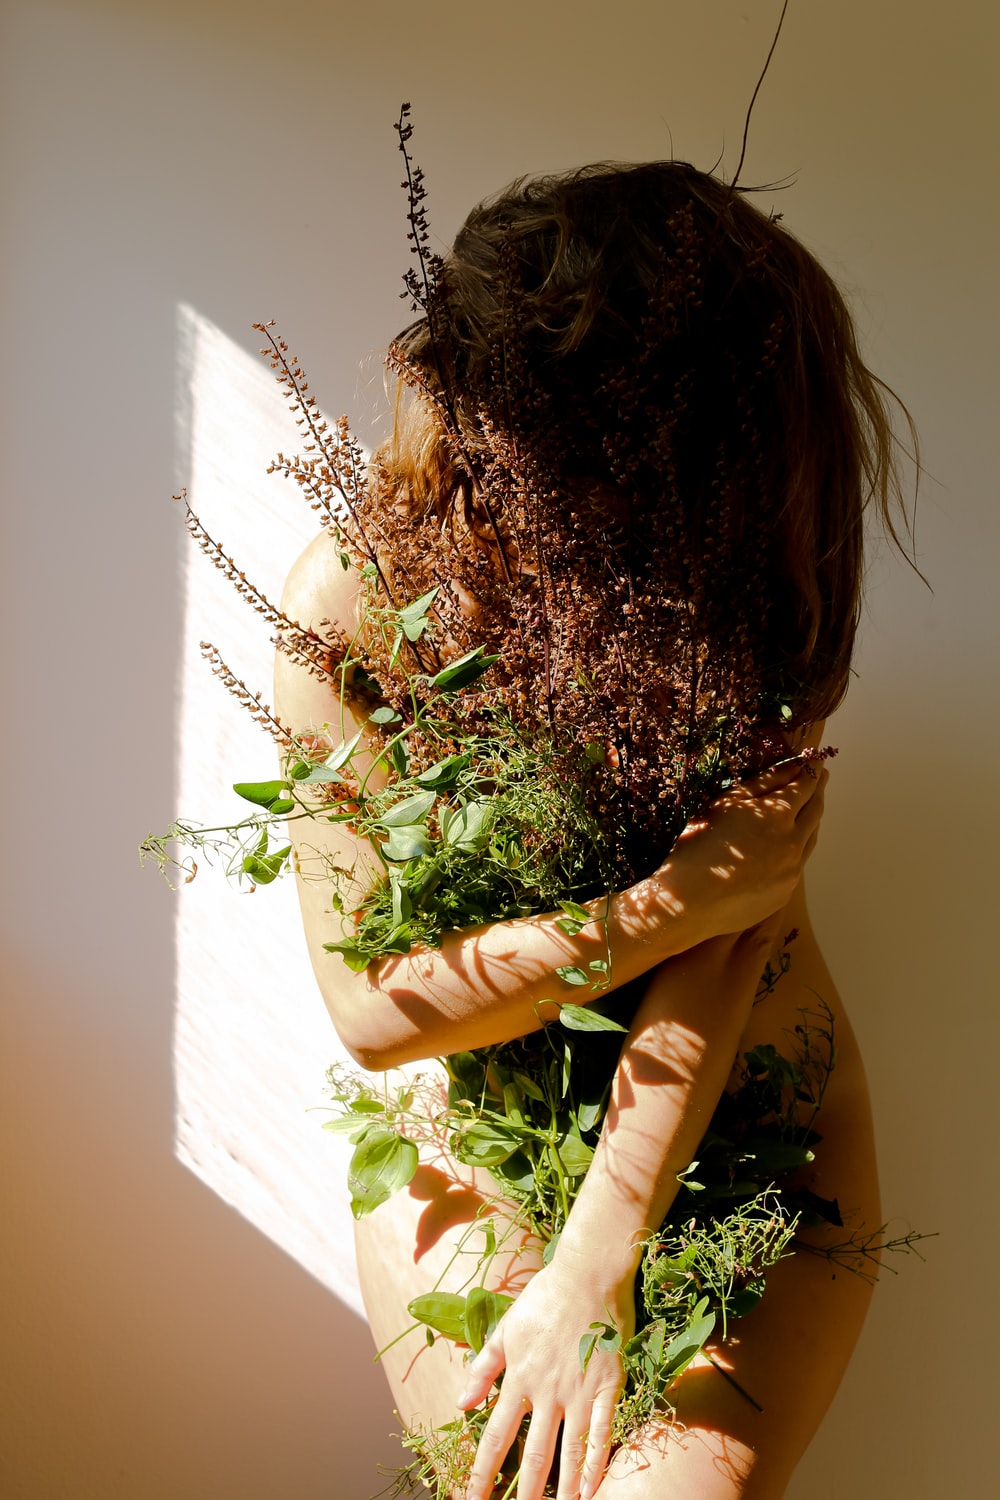 woman covered with plants